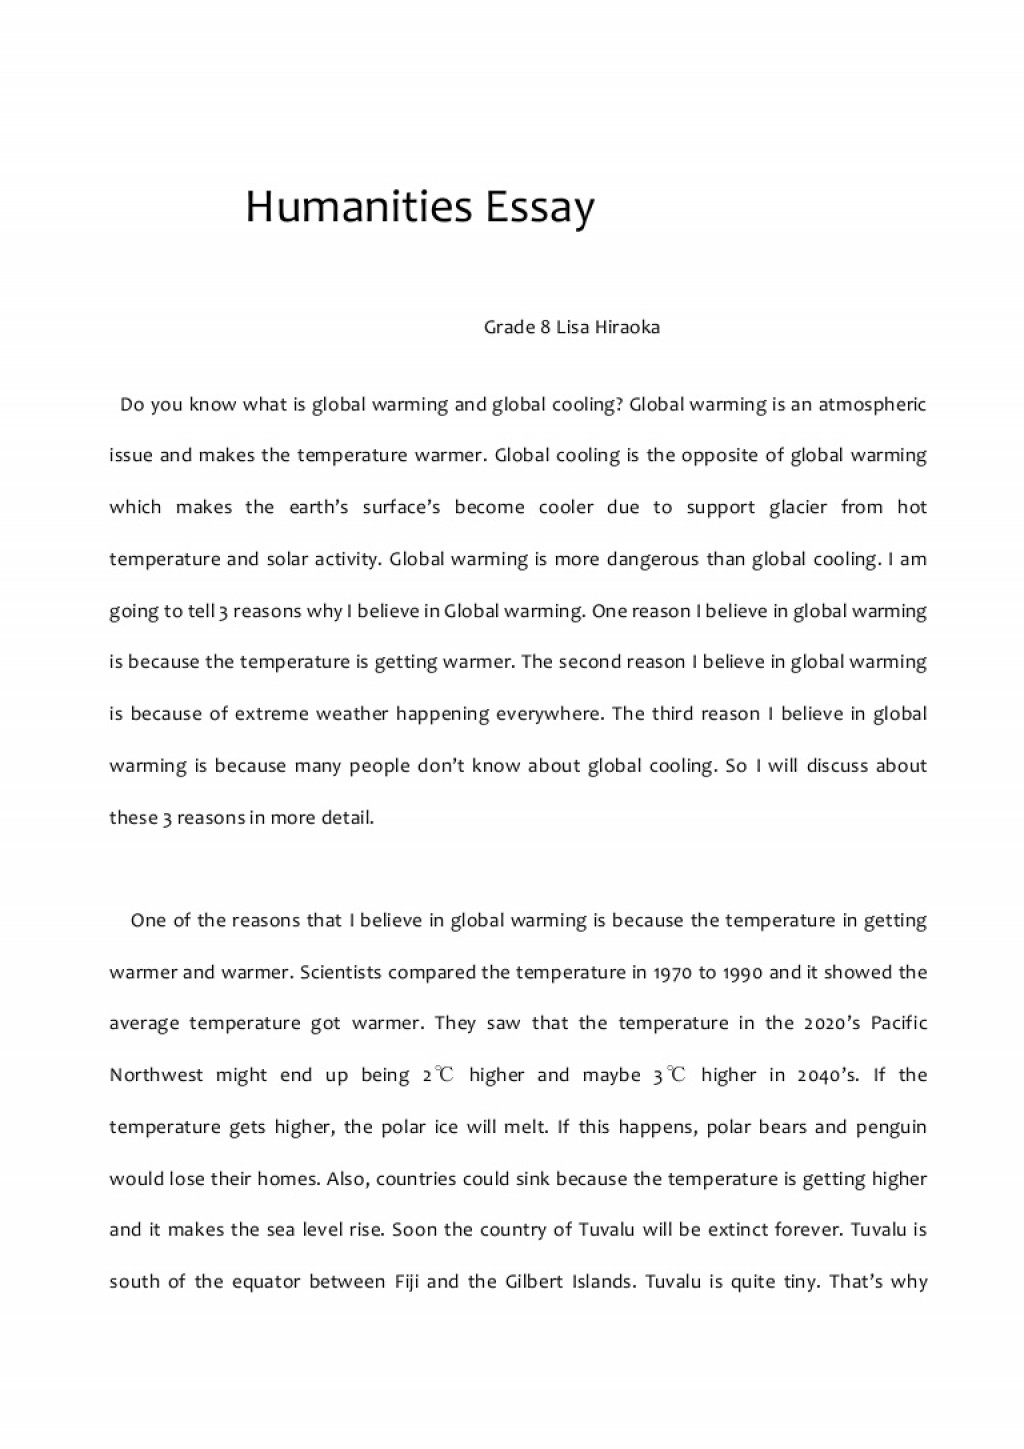 012 This I Believe Essay Topics Example Best Narrative Samples Humanitiesessay Phpapp02 Thumbn Good Fearsome Prompt Easy Funny Large